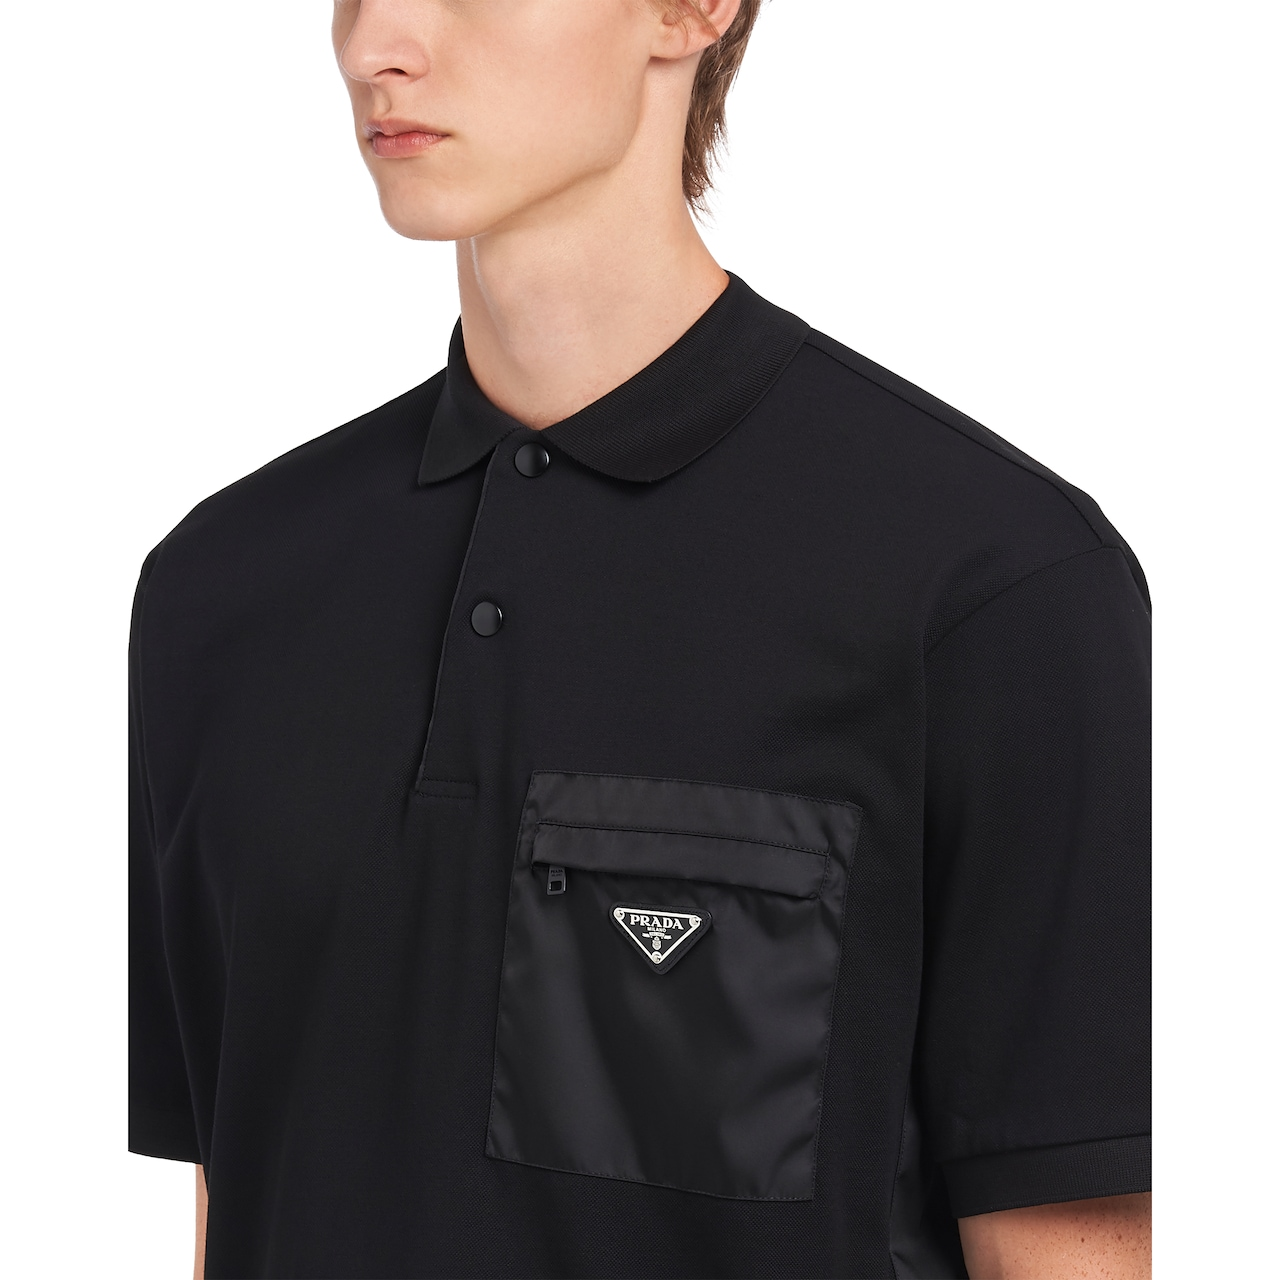 Prada Cotton piqué polo shirt with inserts 5